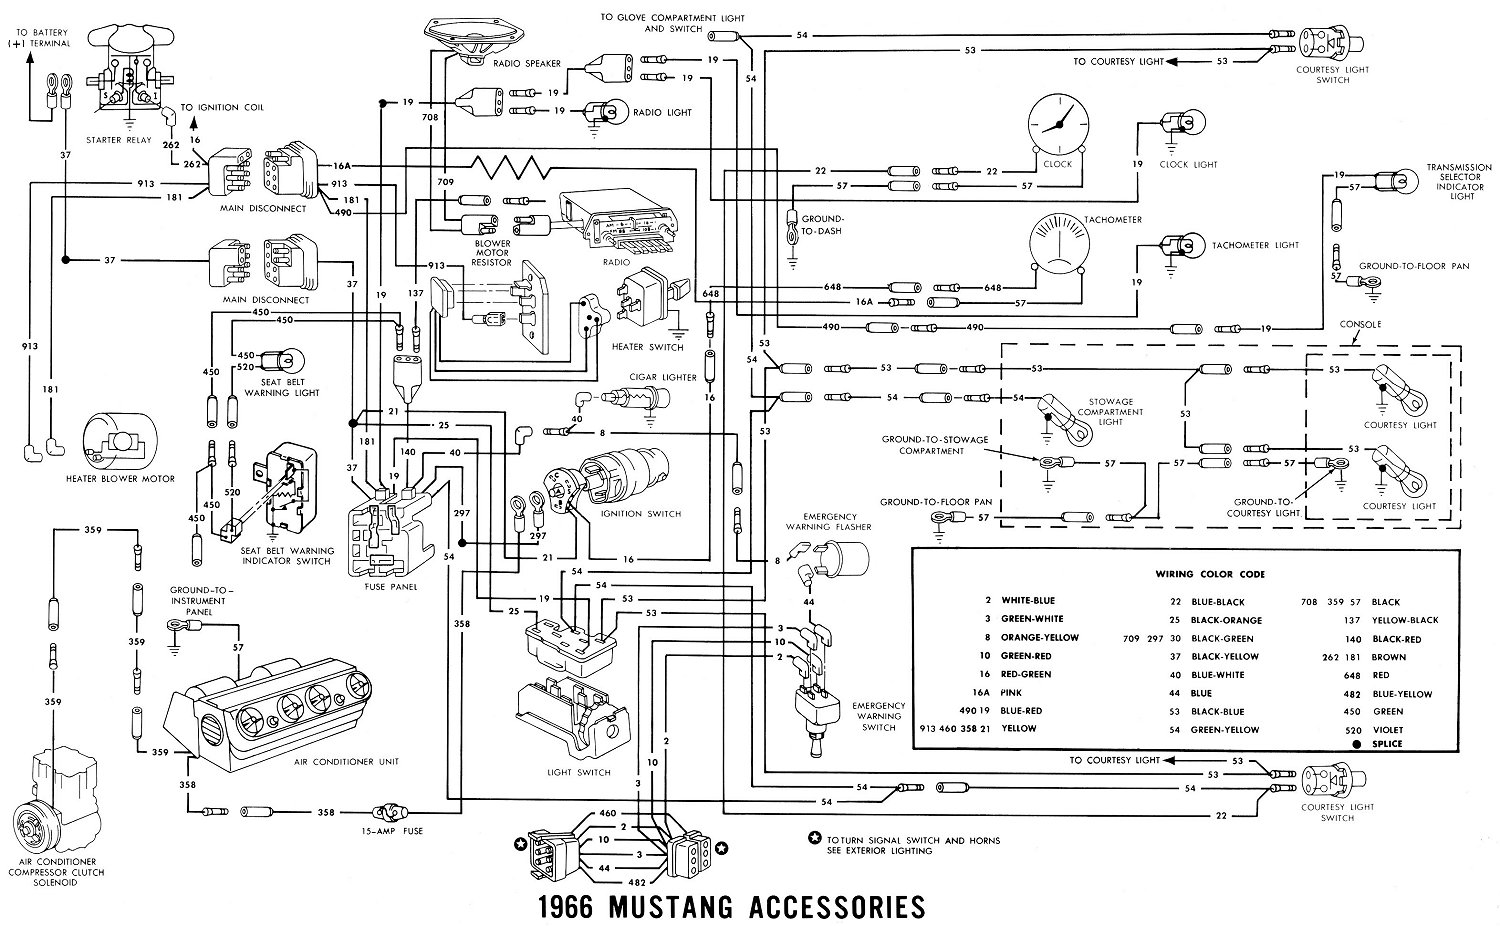 1965 Mustang Wiring Harness Diagram On 1963 Corvette 1964 Schematic Trusted Rh Dafpods Co